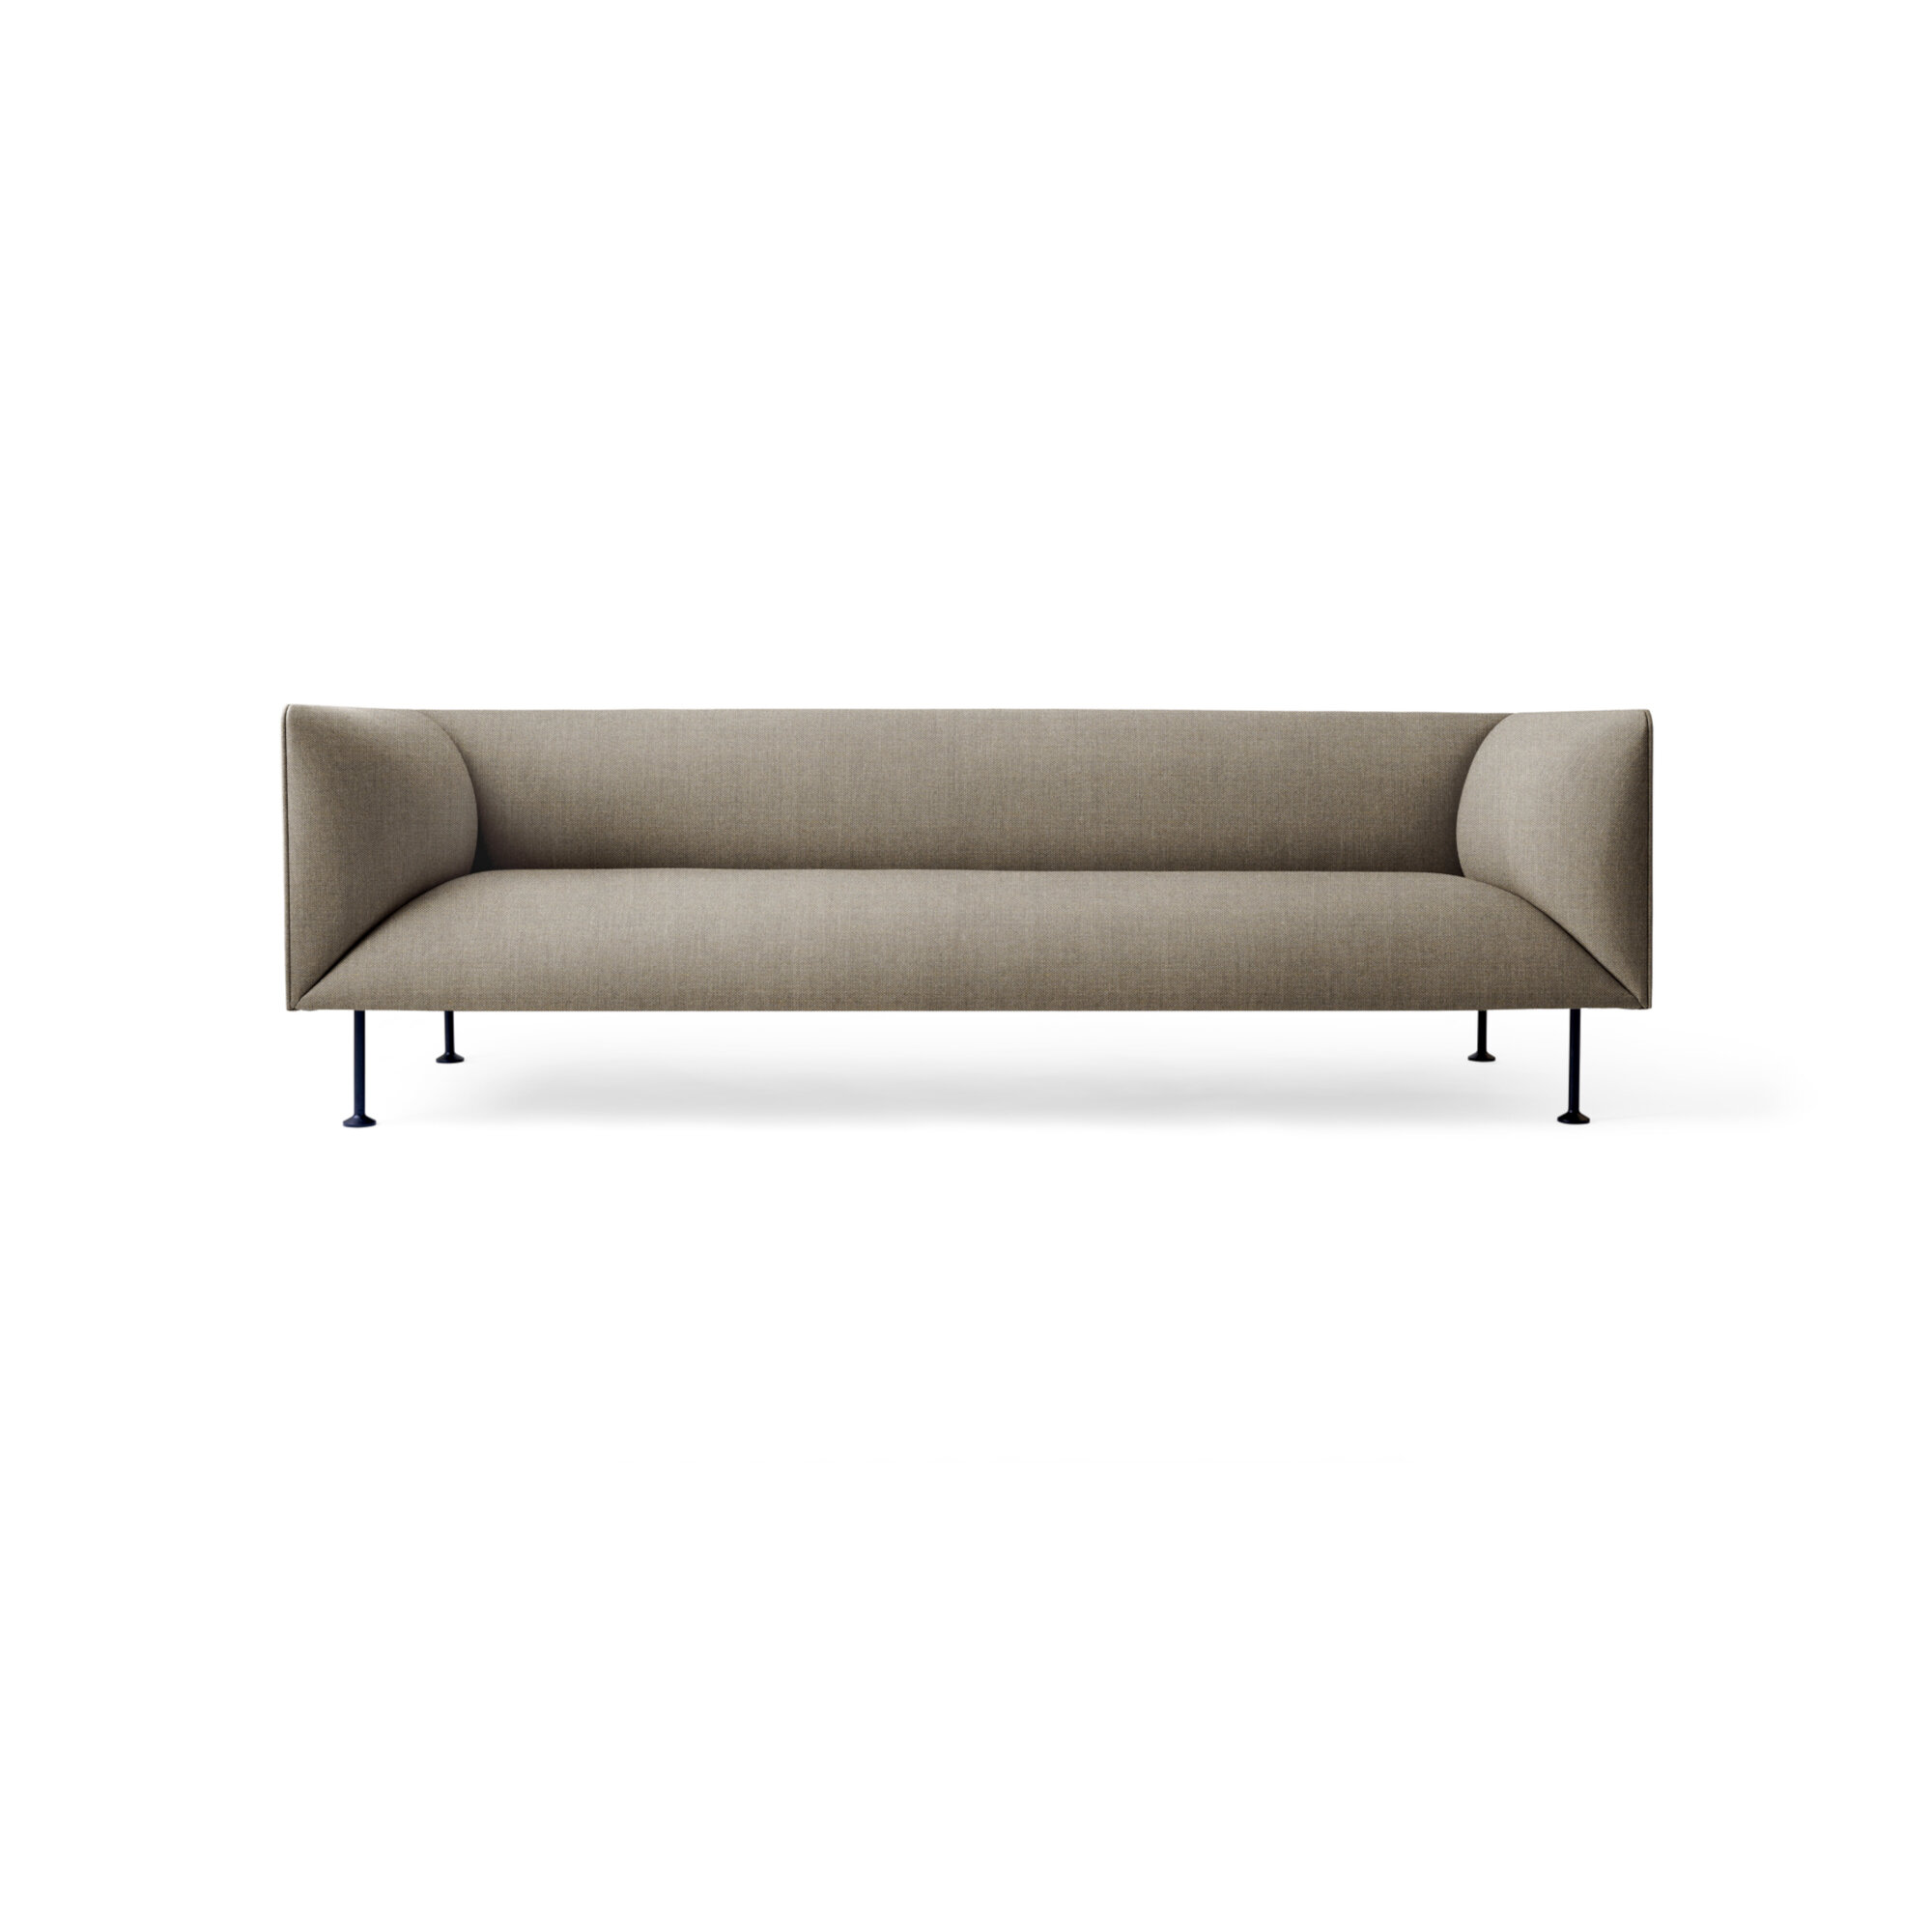 Outstanding Godot Sofa Pabps2019 Chair Design Images Pabps2019Com